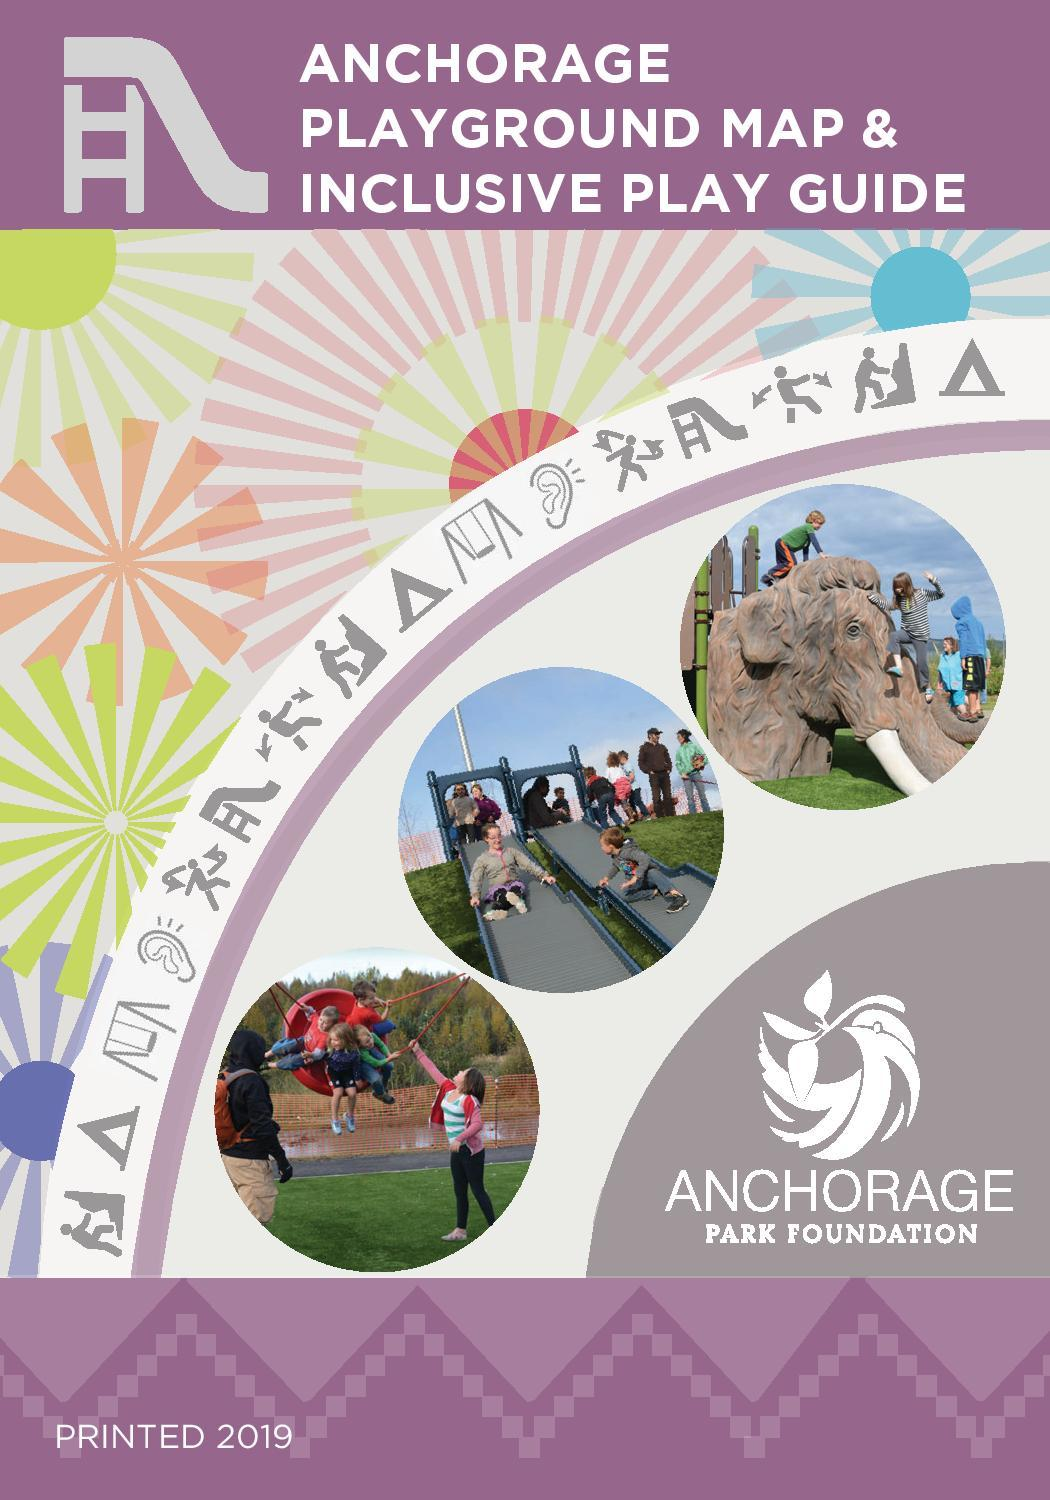 Anchorage Playground Map and Inclusive Play Guide